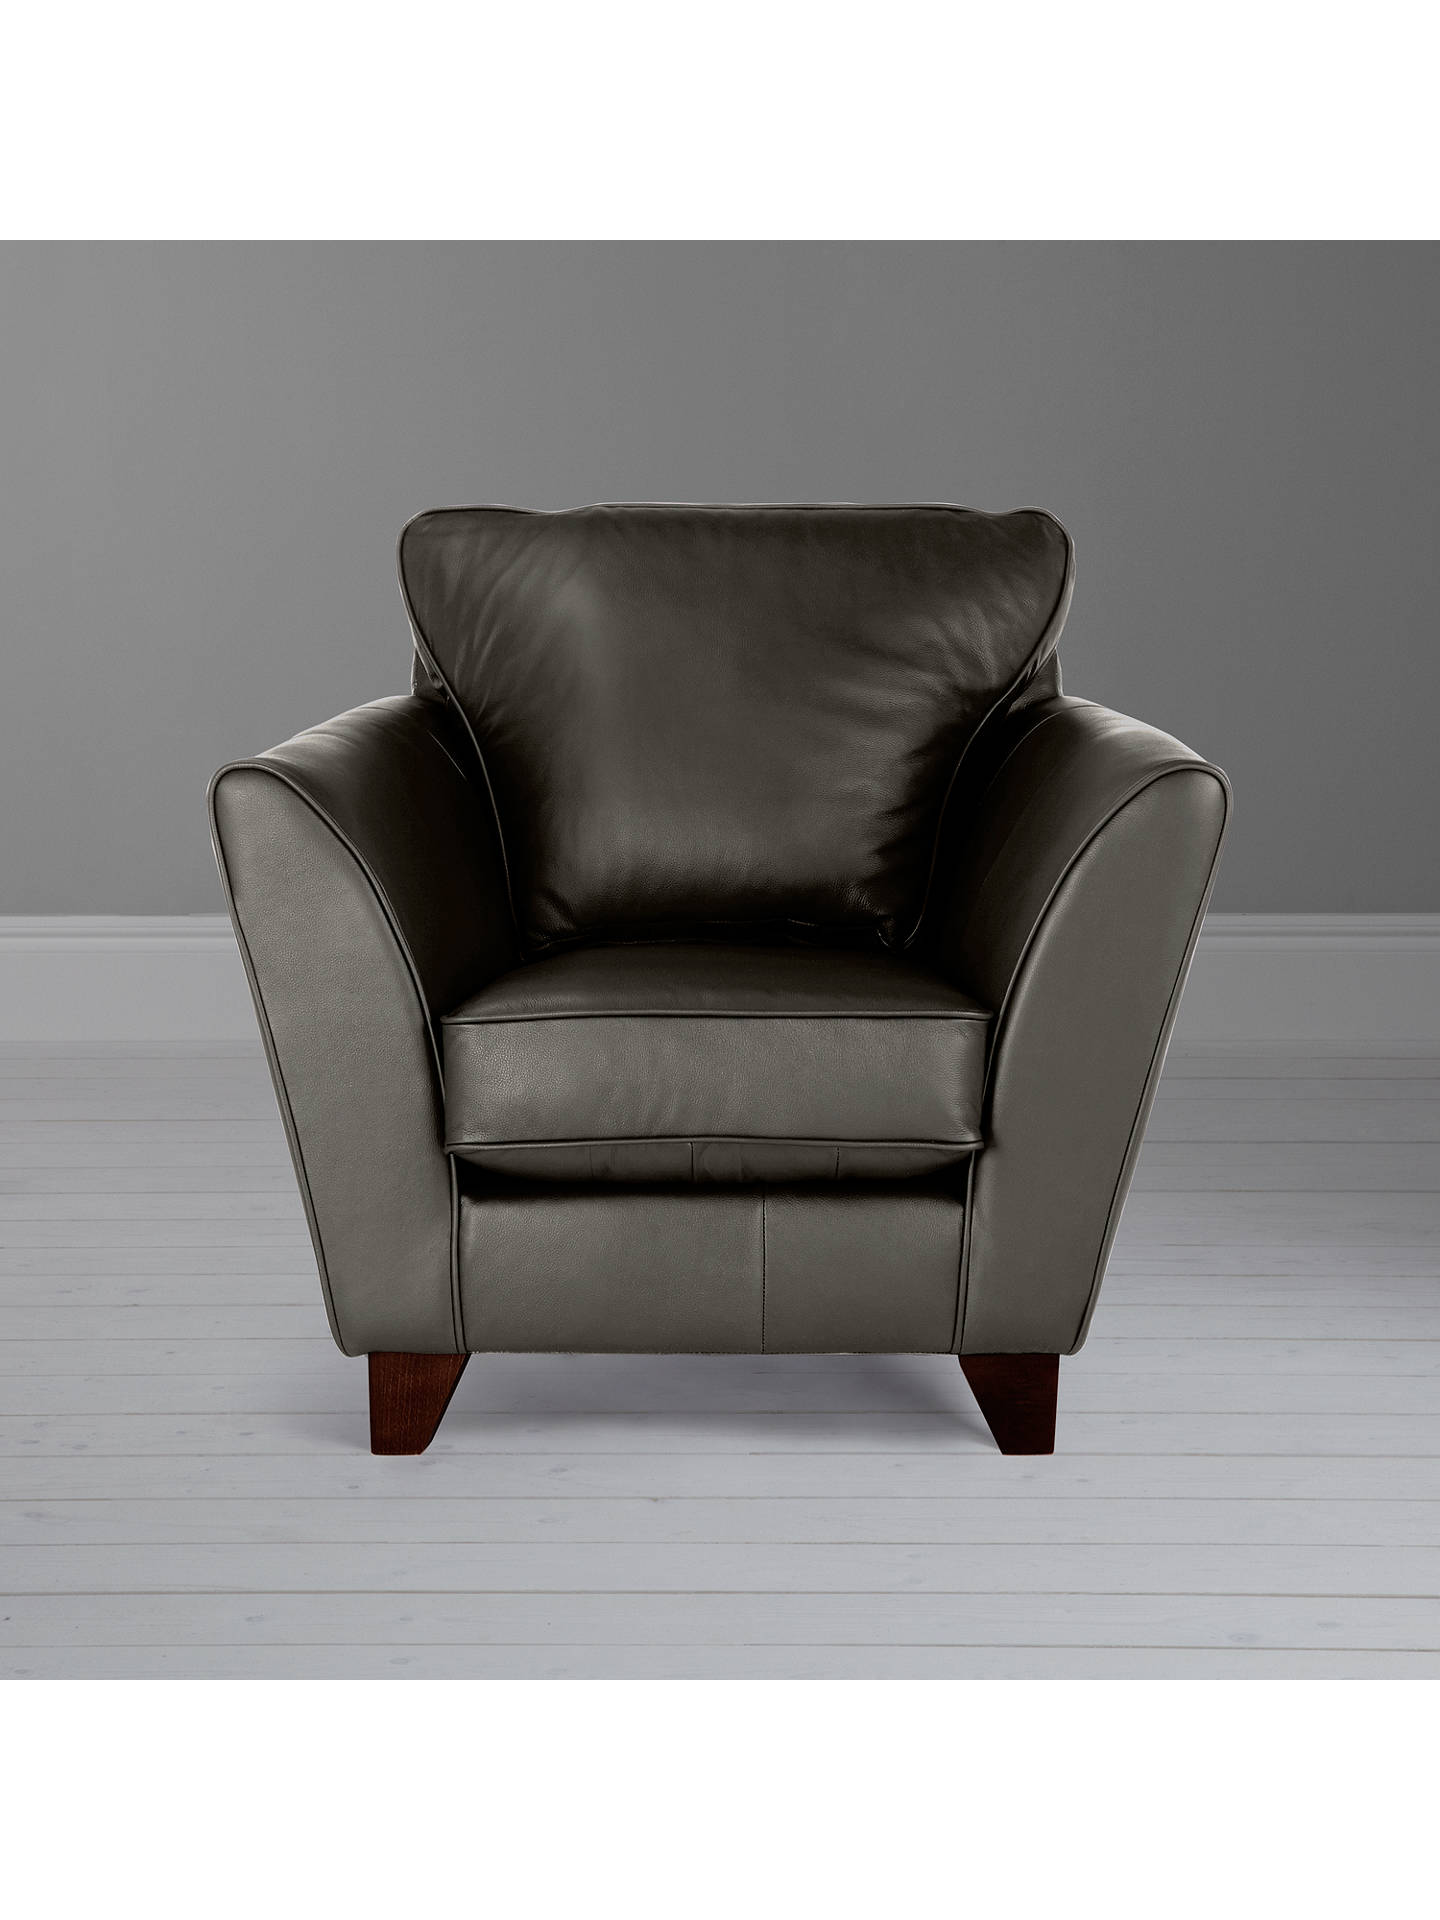 Buy John Lewis & Partners Oslo Leather Armchair, Dark Leg, Winchester Anthracite Online at johnlewis.com